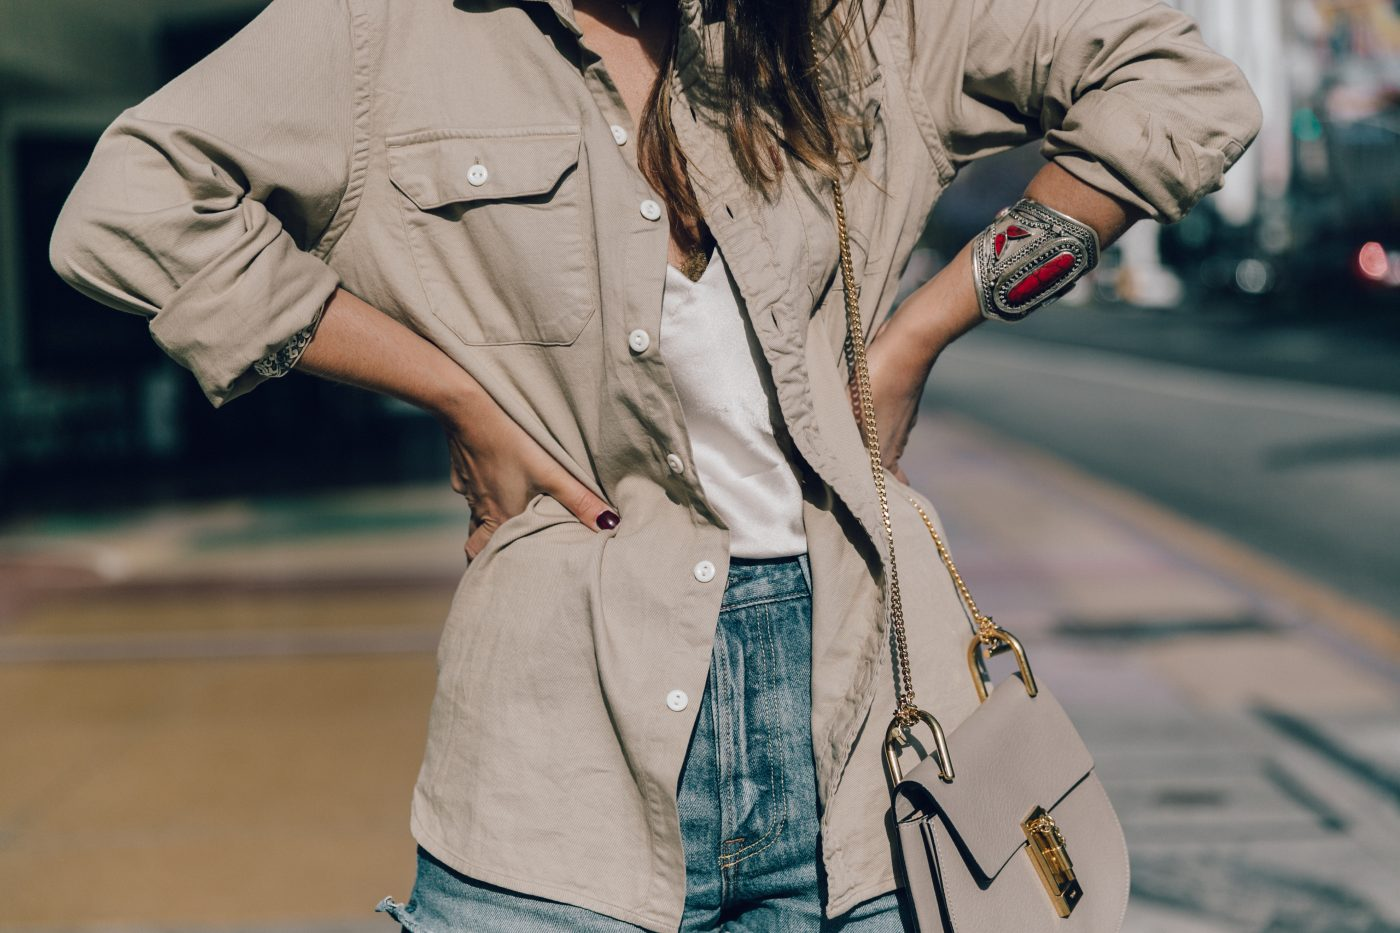 Levis_Shirt-GRLFRND_Denim-Chloe_Bag-Los_Angeles-Shorts-Outfit-Street_Style-Ray_Ban-Street_Style-Collage_Vintage-28